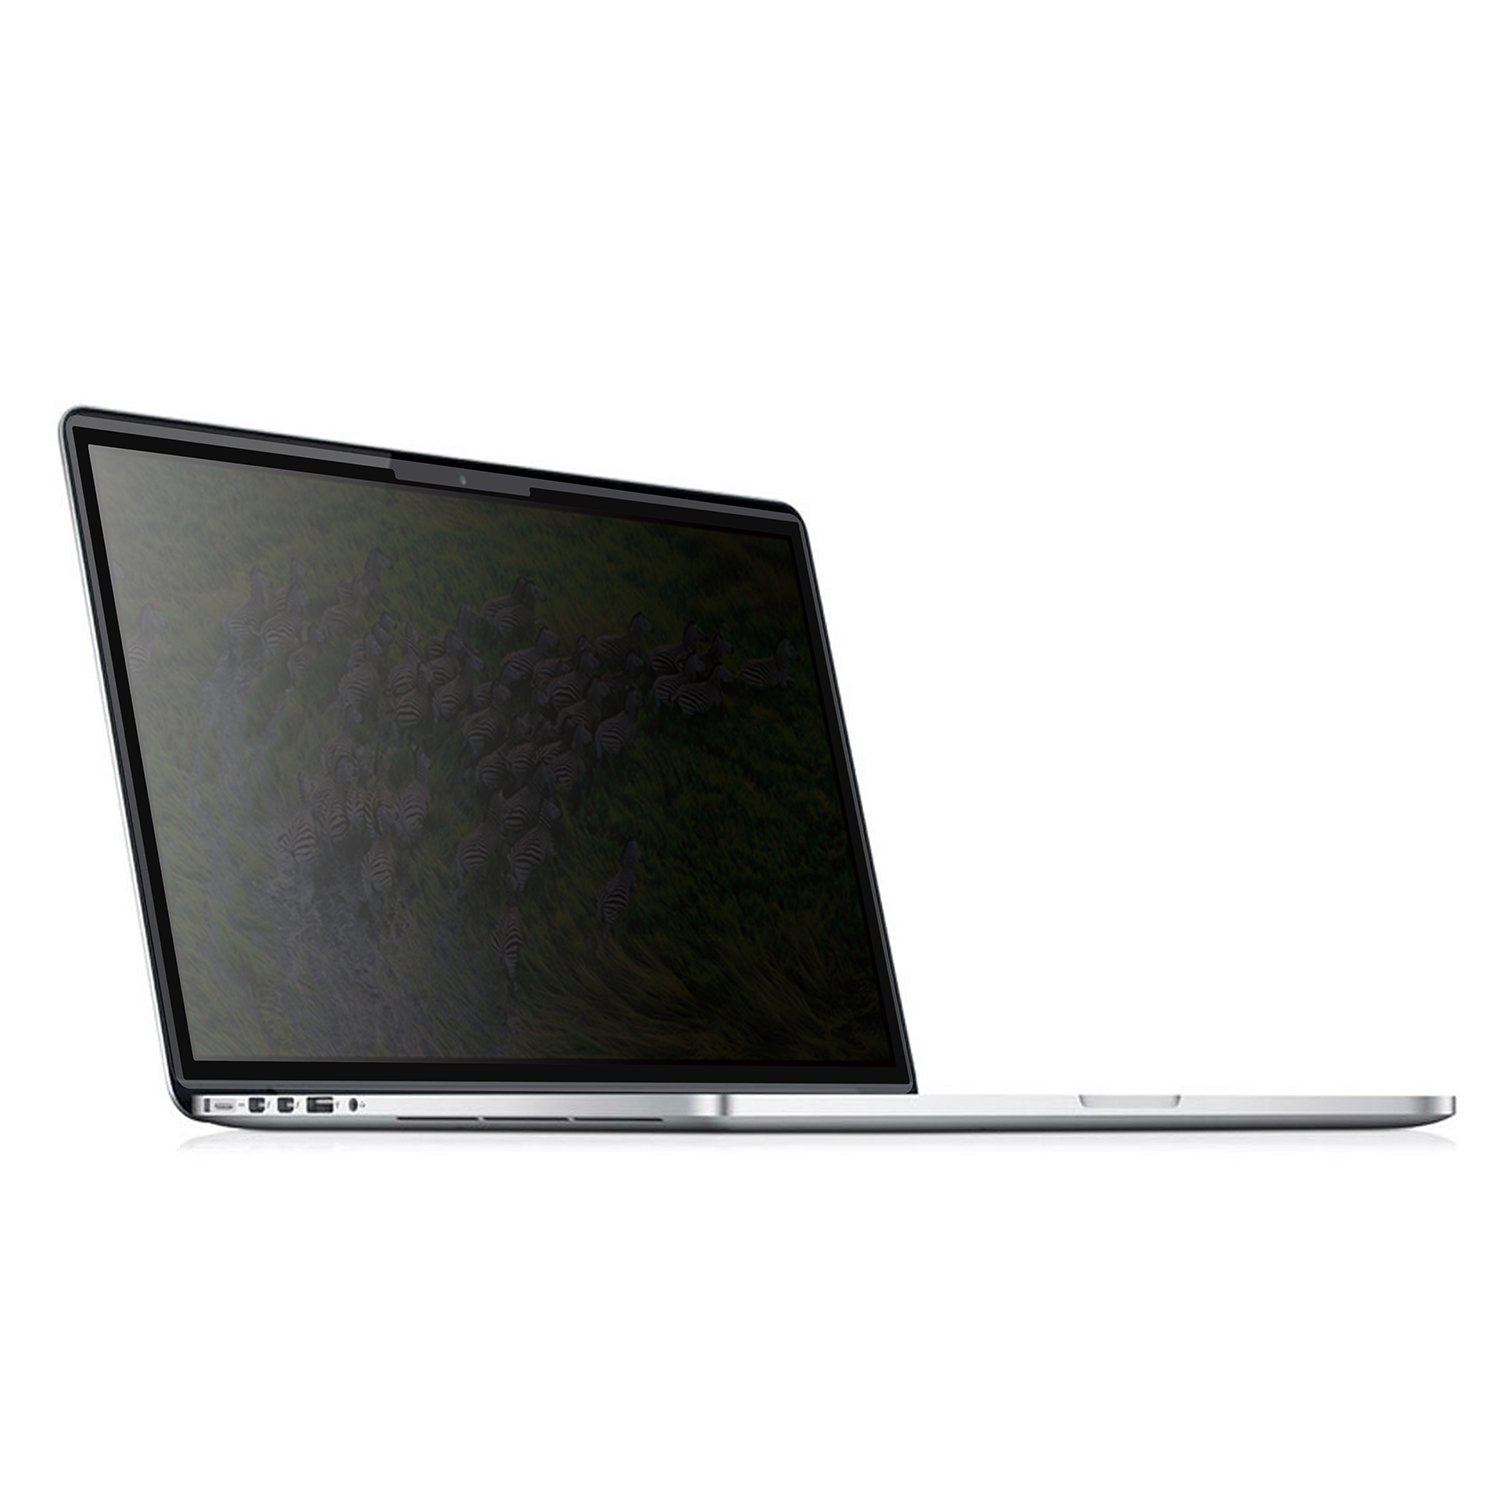 Easy On/Off Removable Privacy Screen Filter for 15.6 inch Edge to Edge Glass Widescreen Laptop - Works on Touchscreens - Please measure carefully